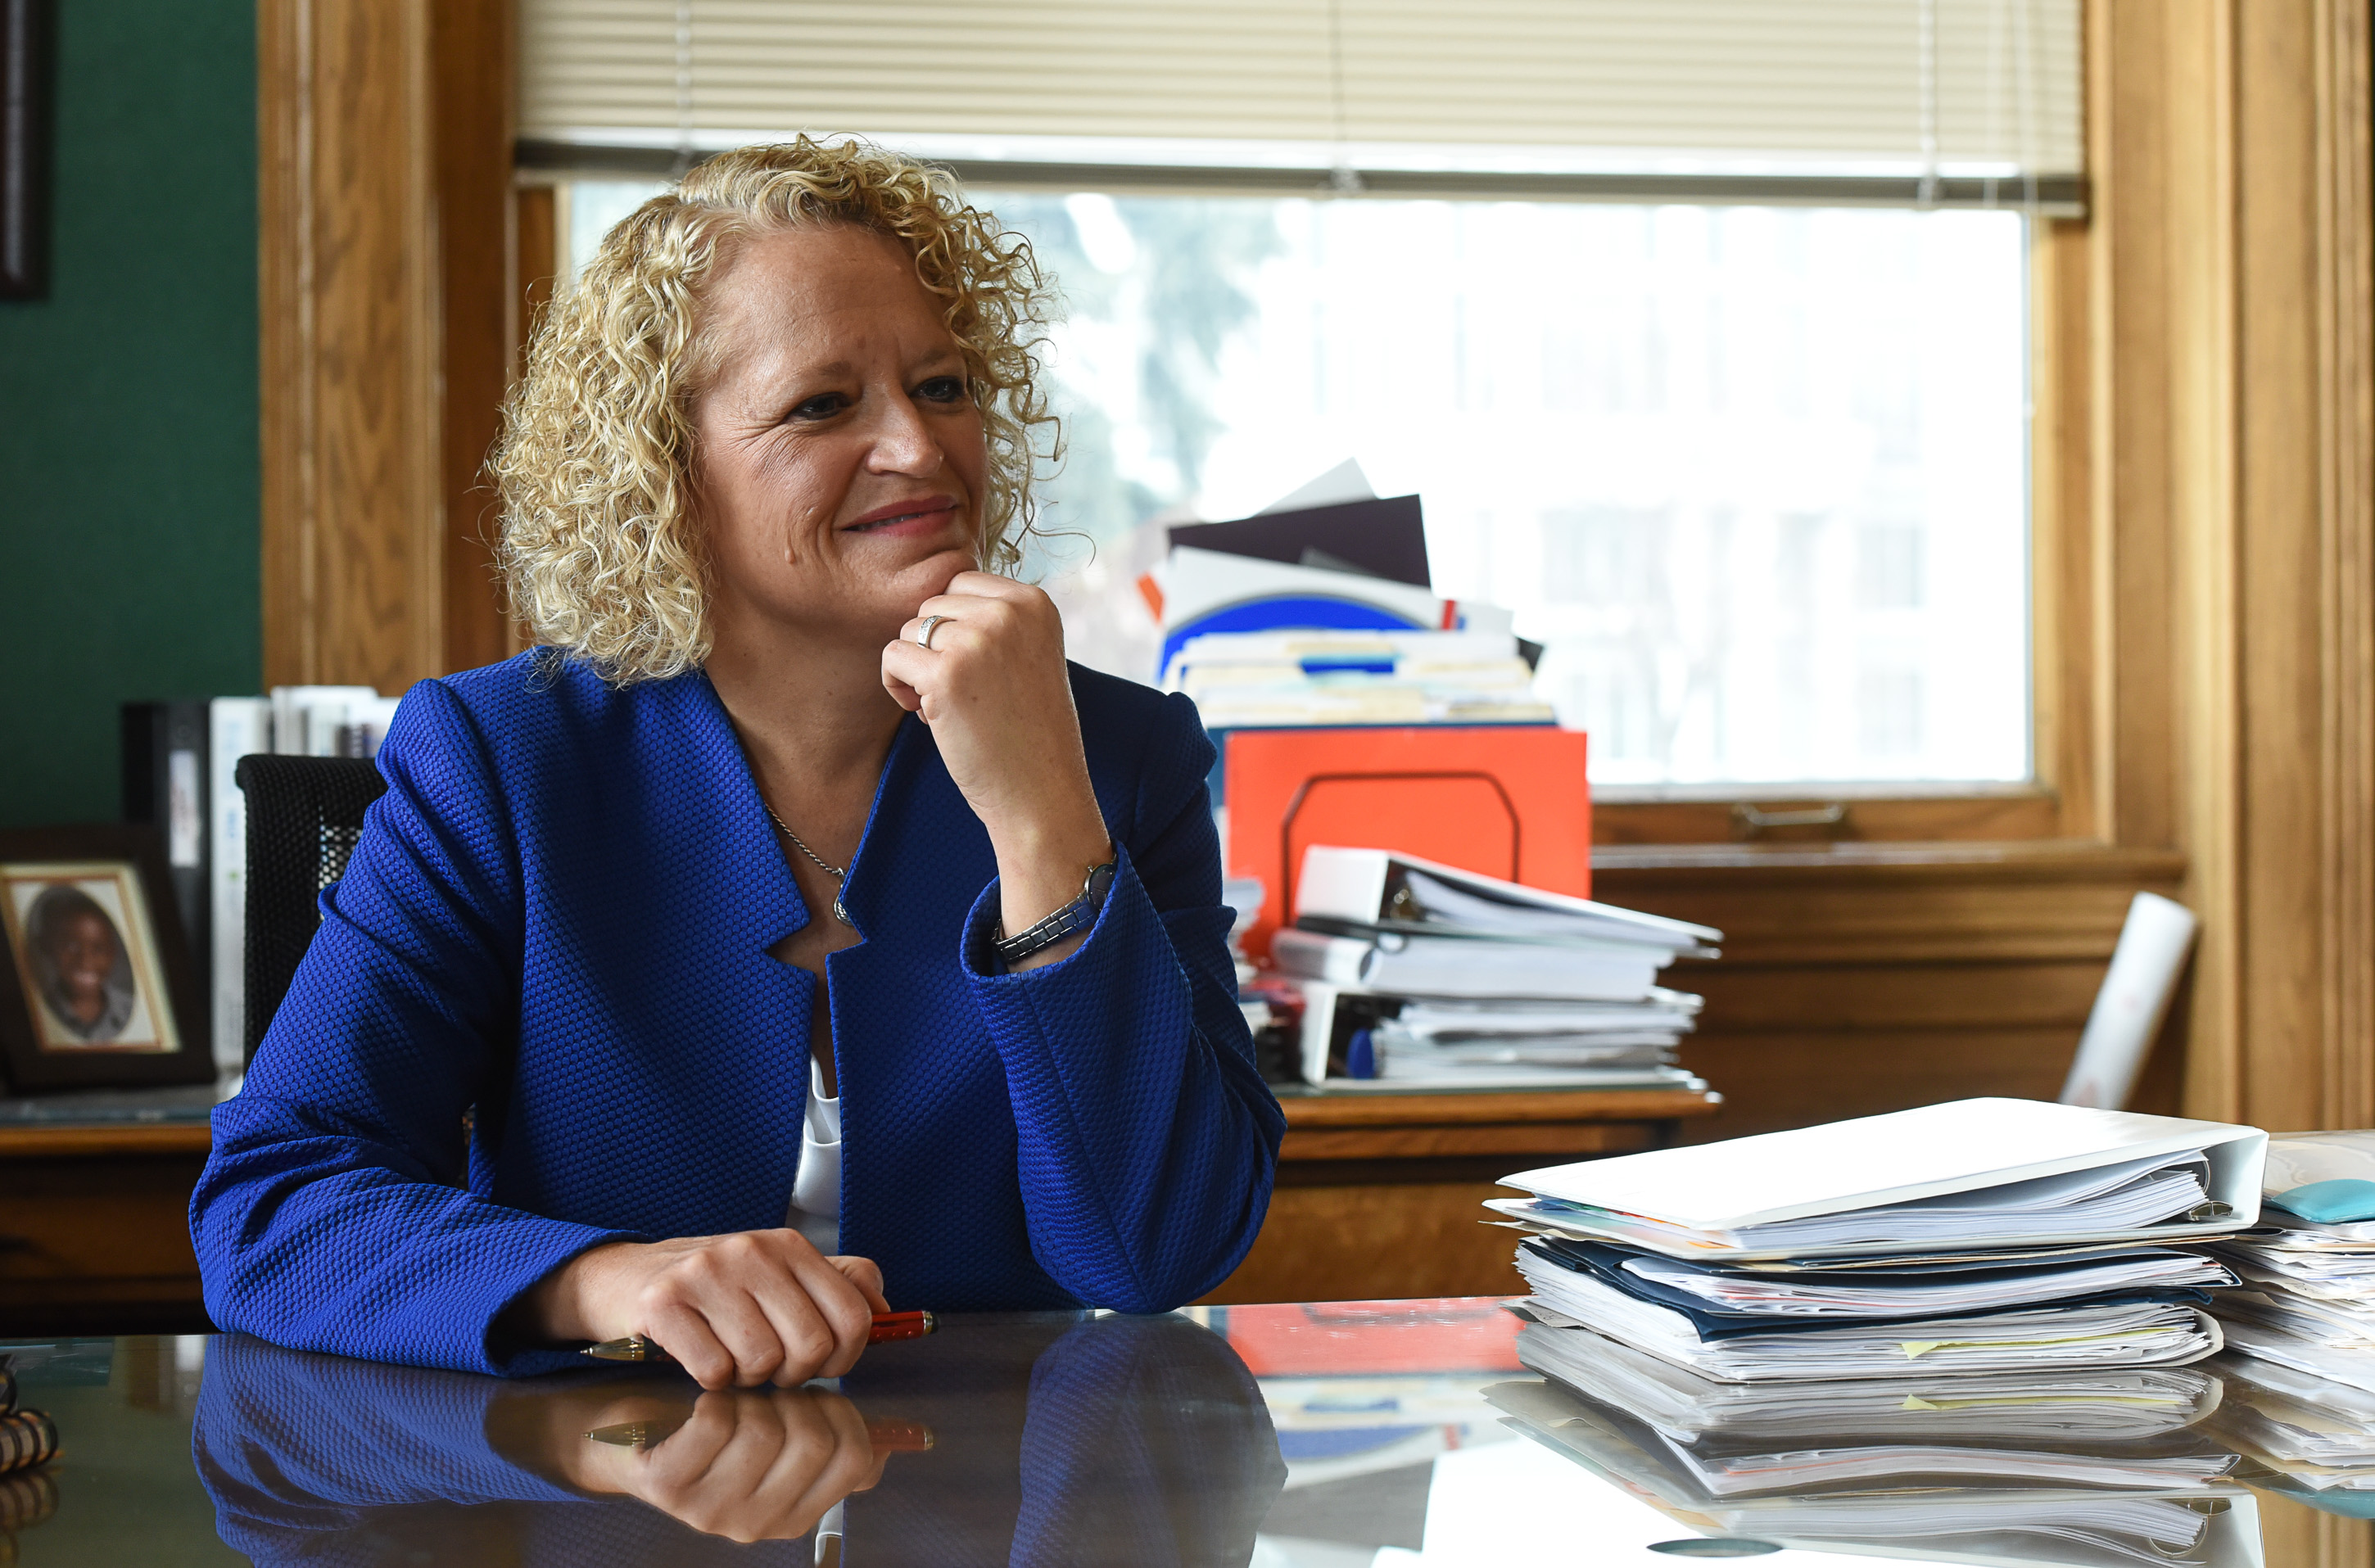 Gehrke: My perfect, absolutely definitive, no-way-you-could-argue-with-me list of Utah's top 25 political power players